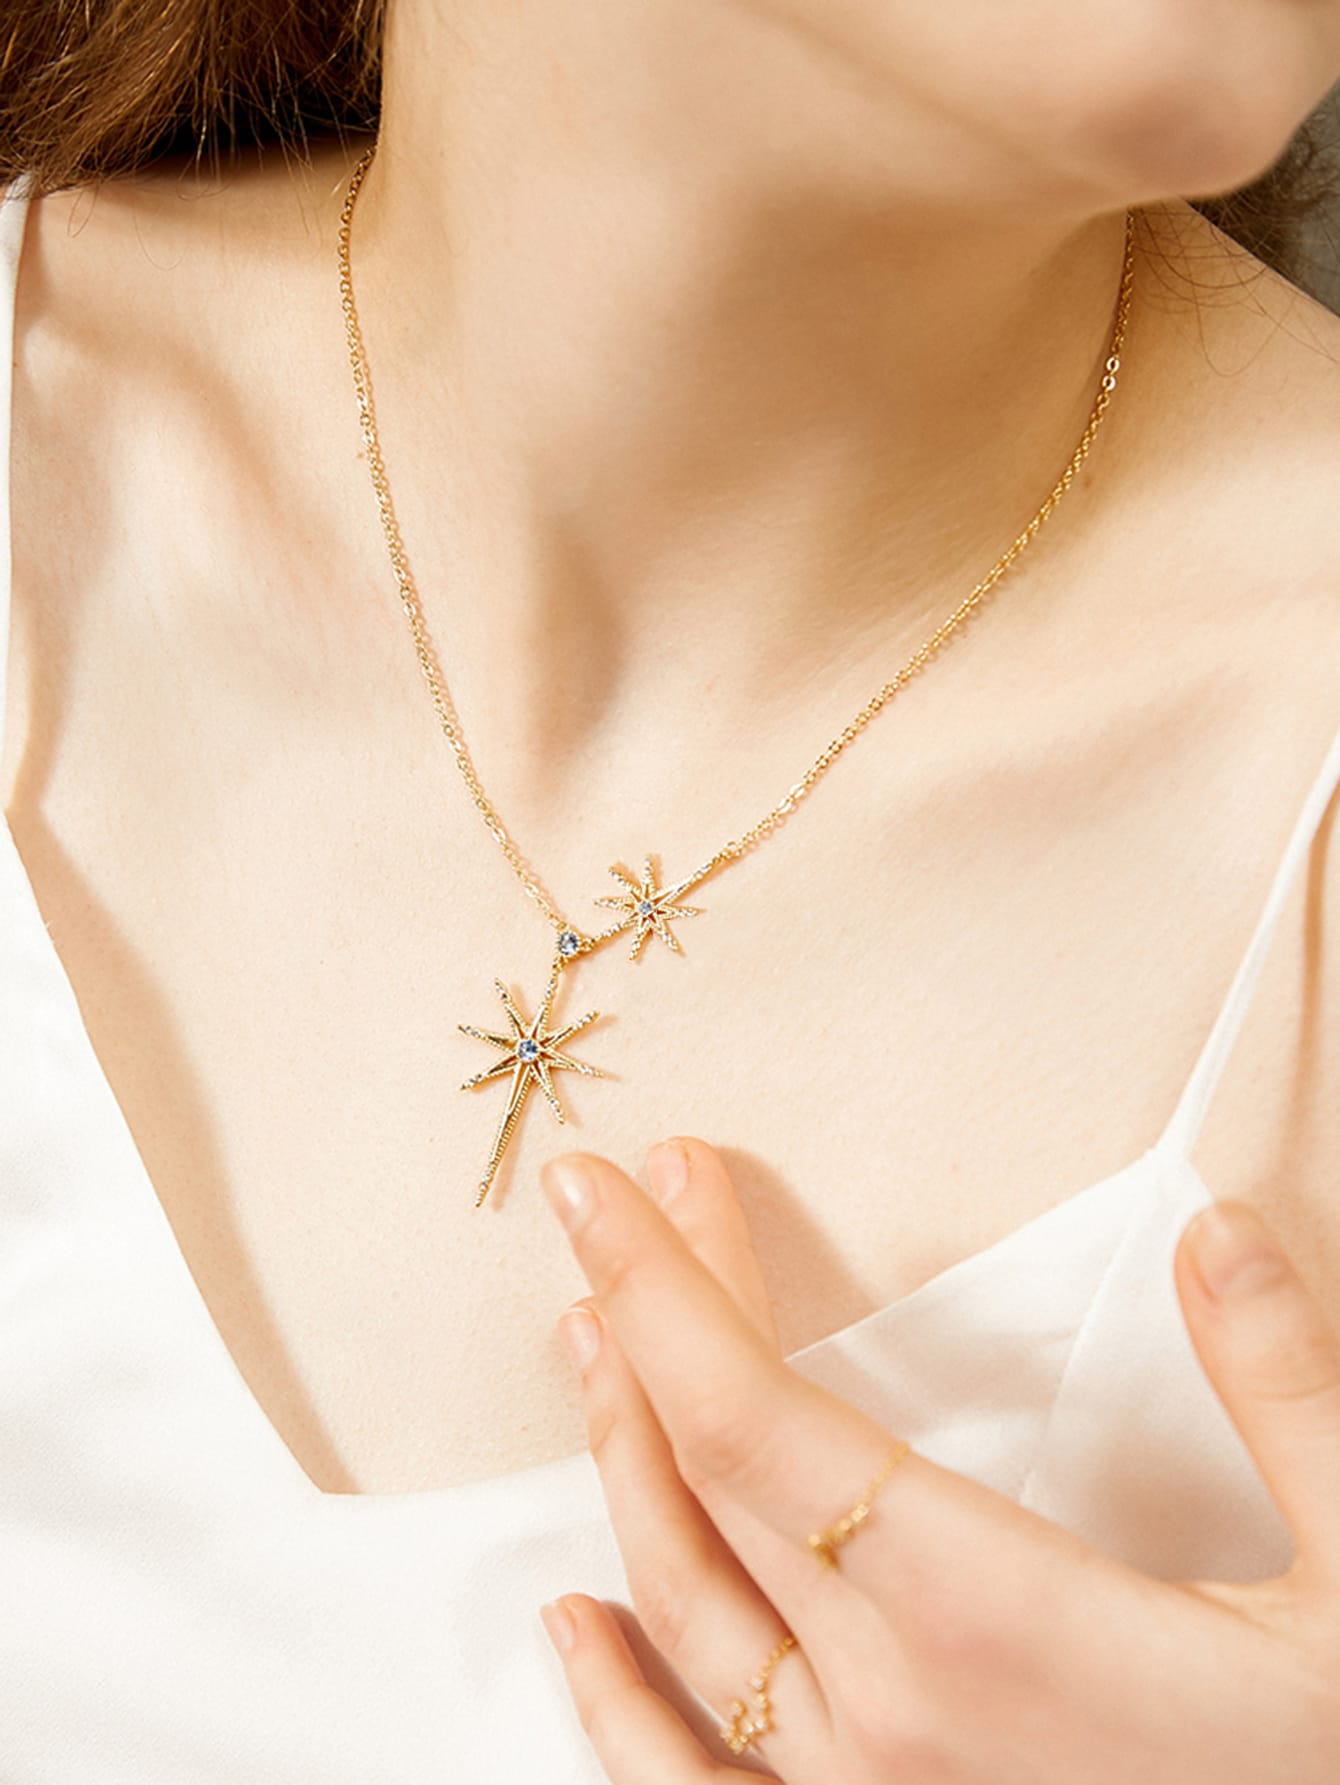 1pc Golden Star Rhinestone Engraved Pendant Necklace